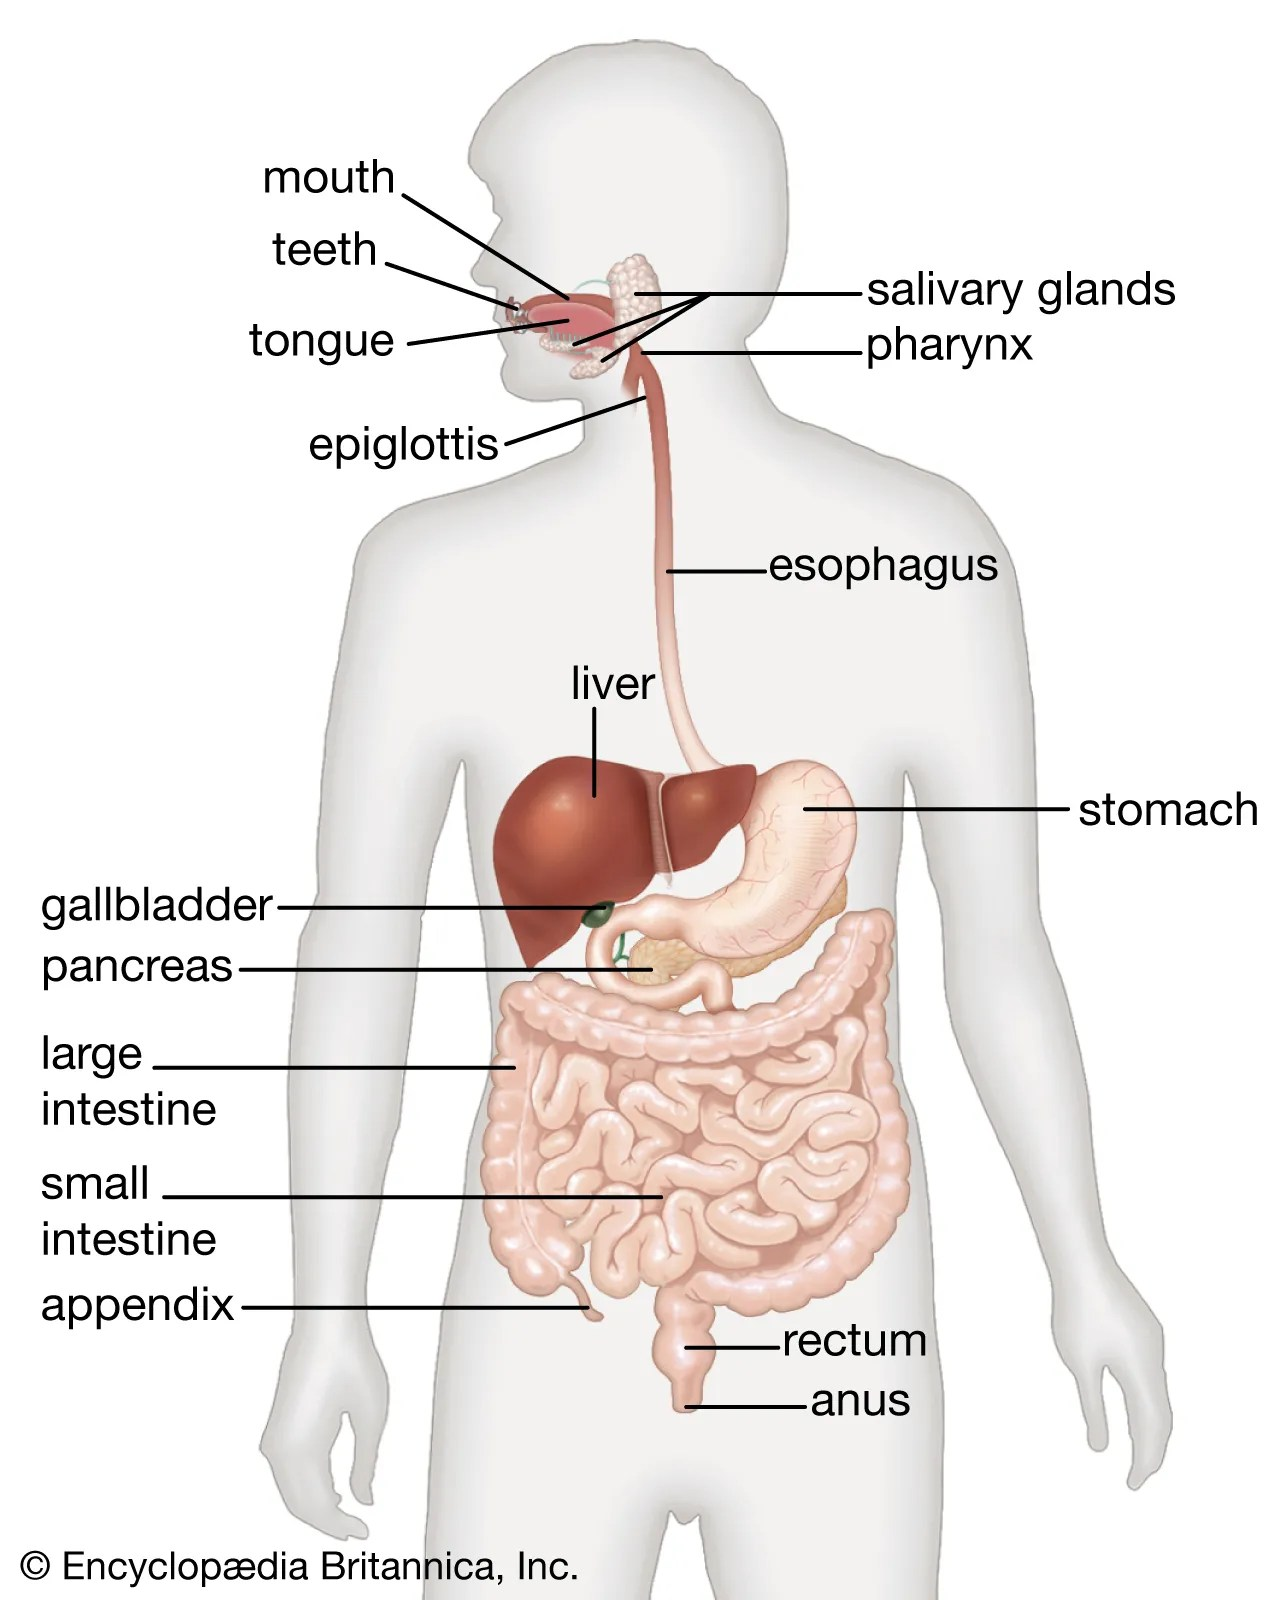 Picture Of Digestive System With Labels : picture, digestive, system, labels, Human, Digestive, System, Description,, Parts,, Functions, Britannica